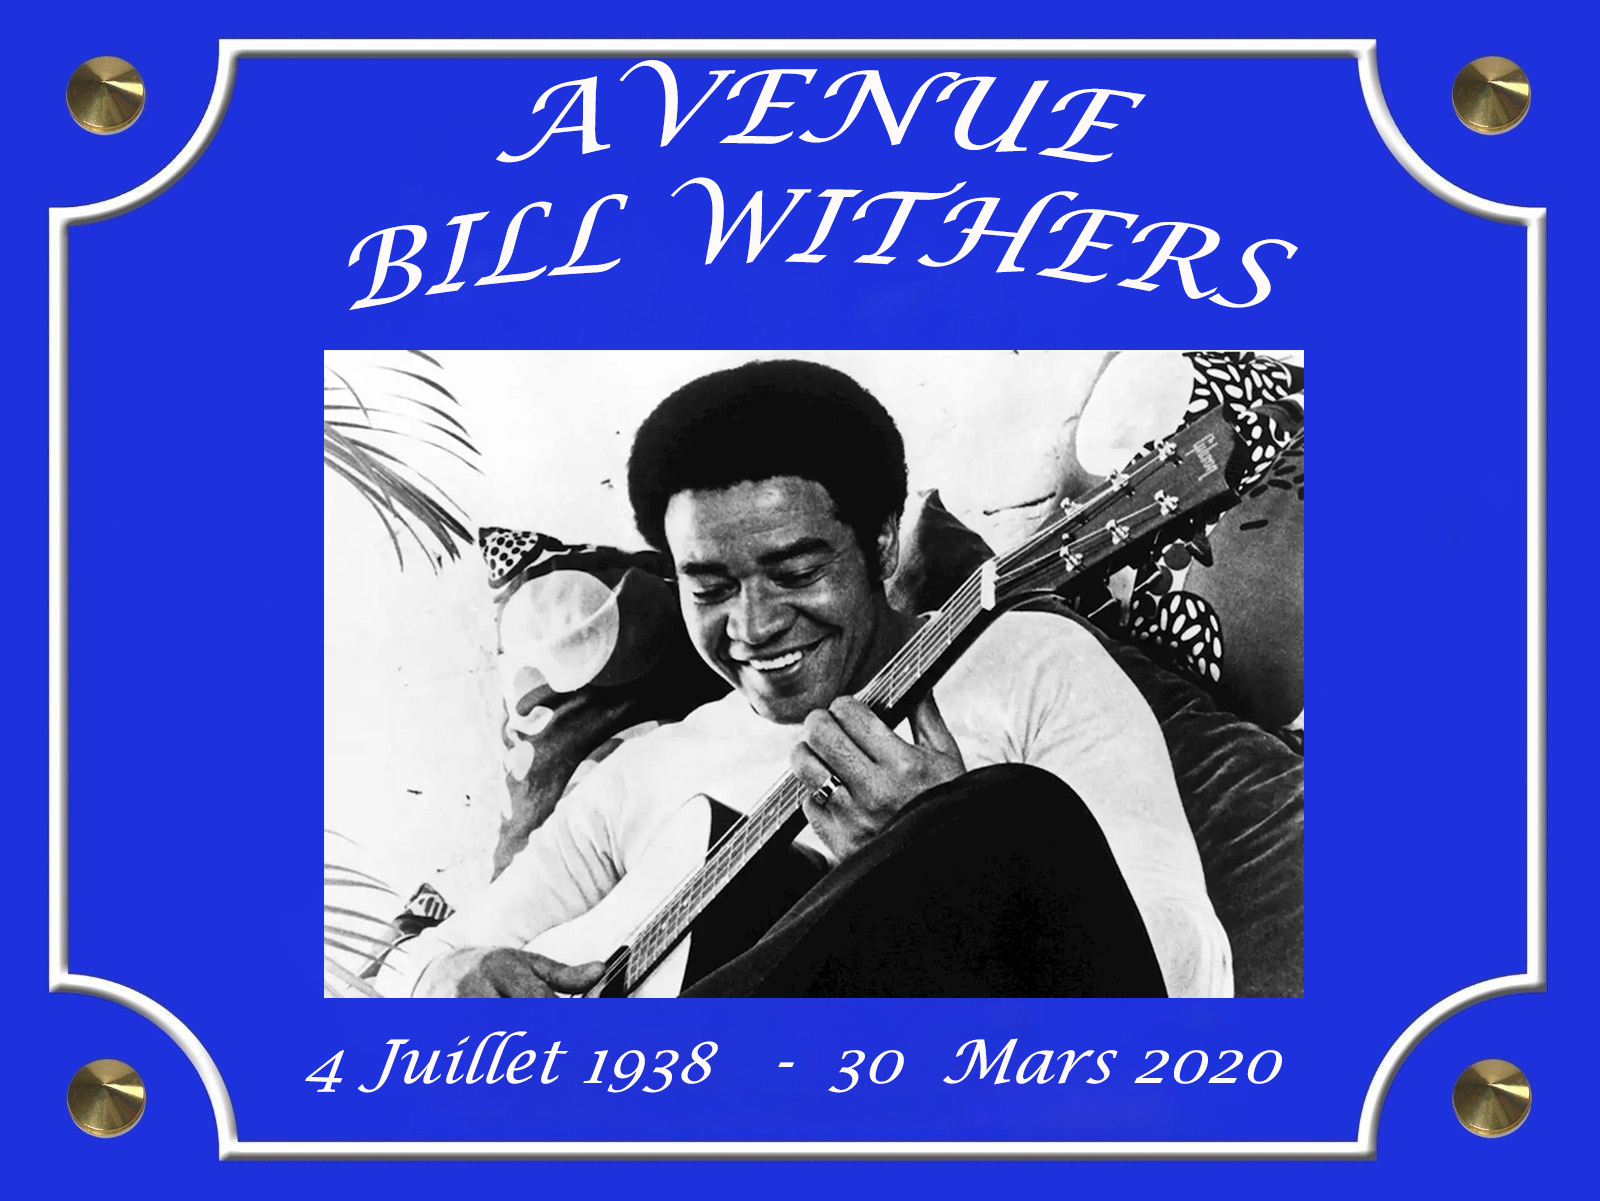 Avennue Bill Withers 1 Photo